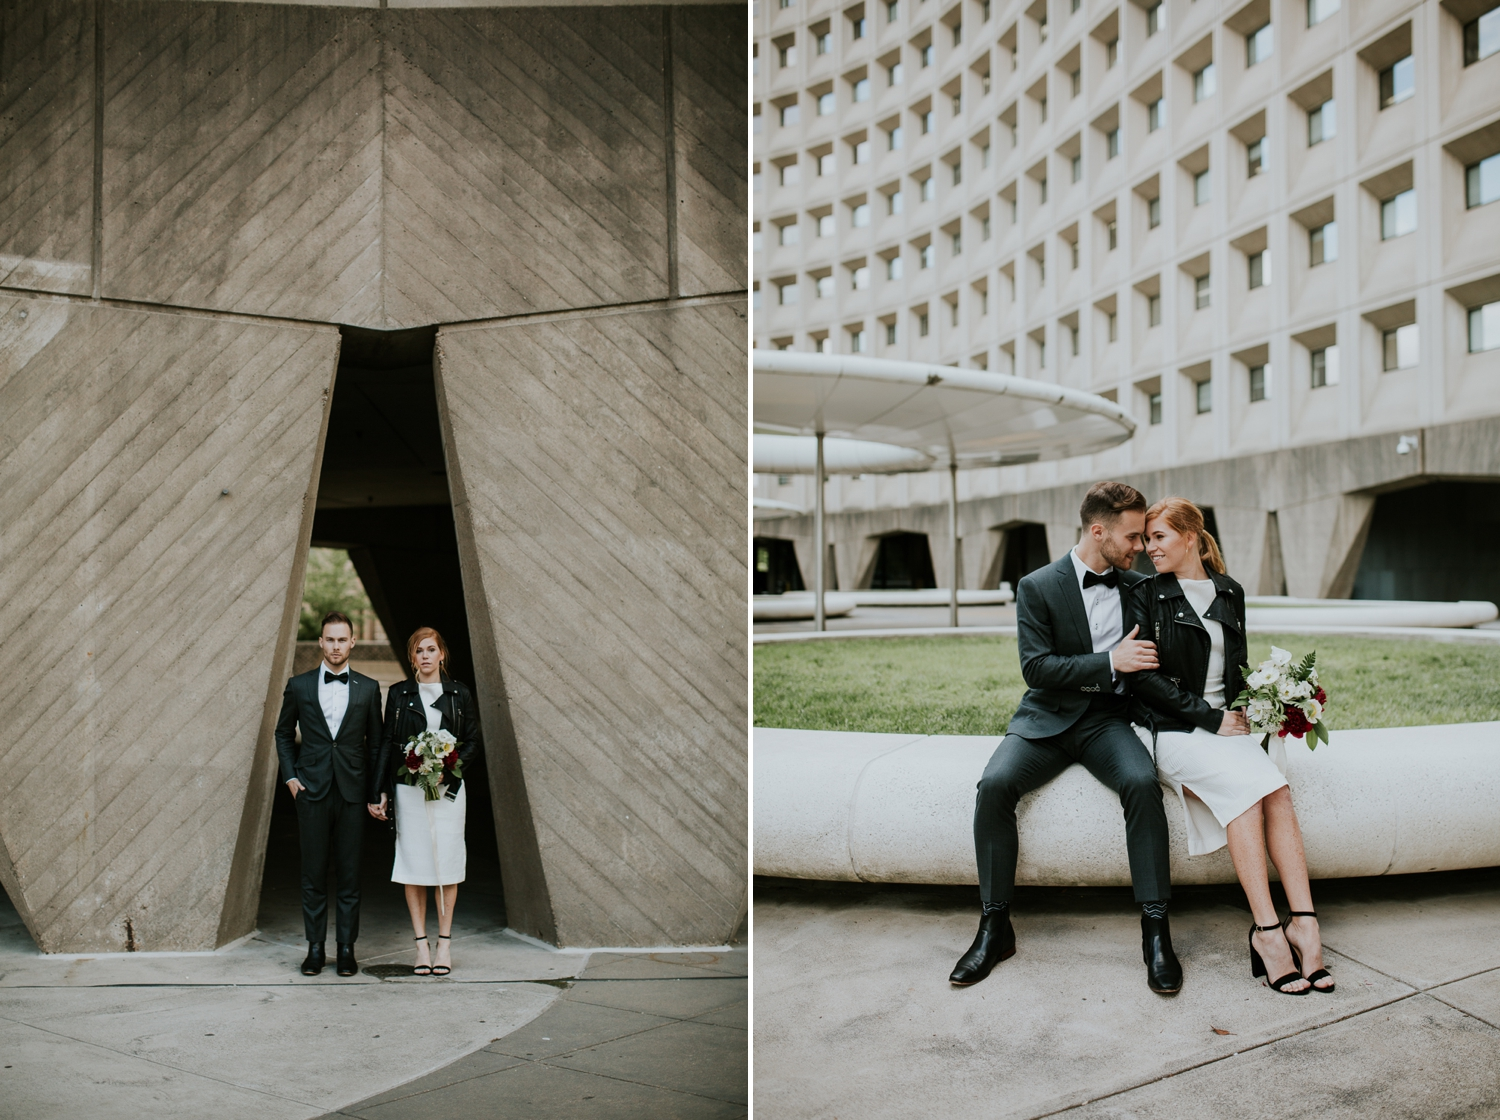 washington-dc-hotel-hive-elopement-wedding-photographer 70.jpg